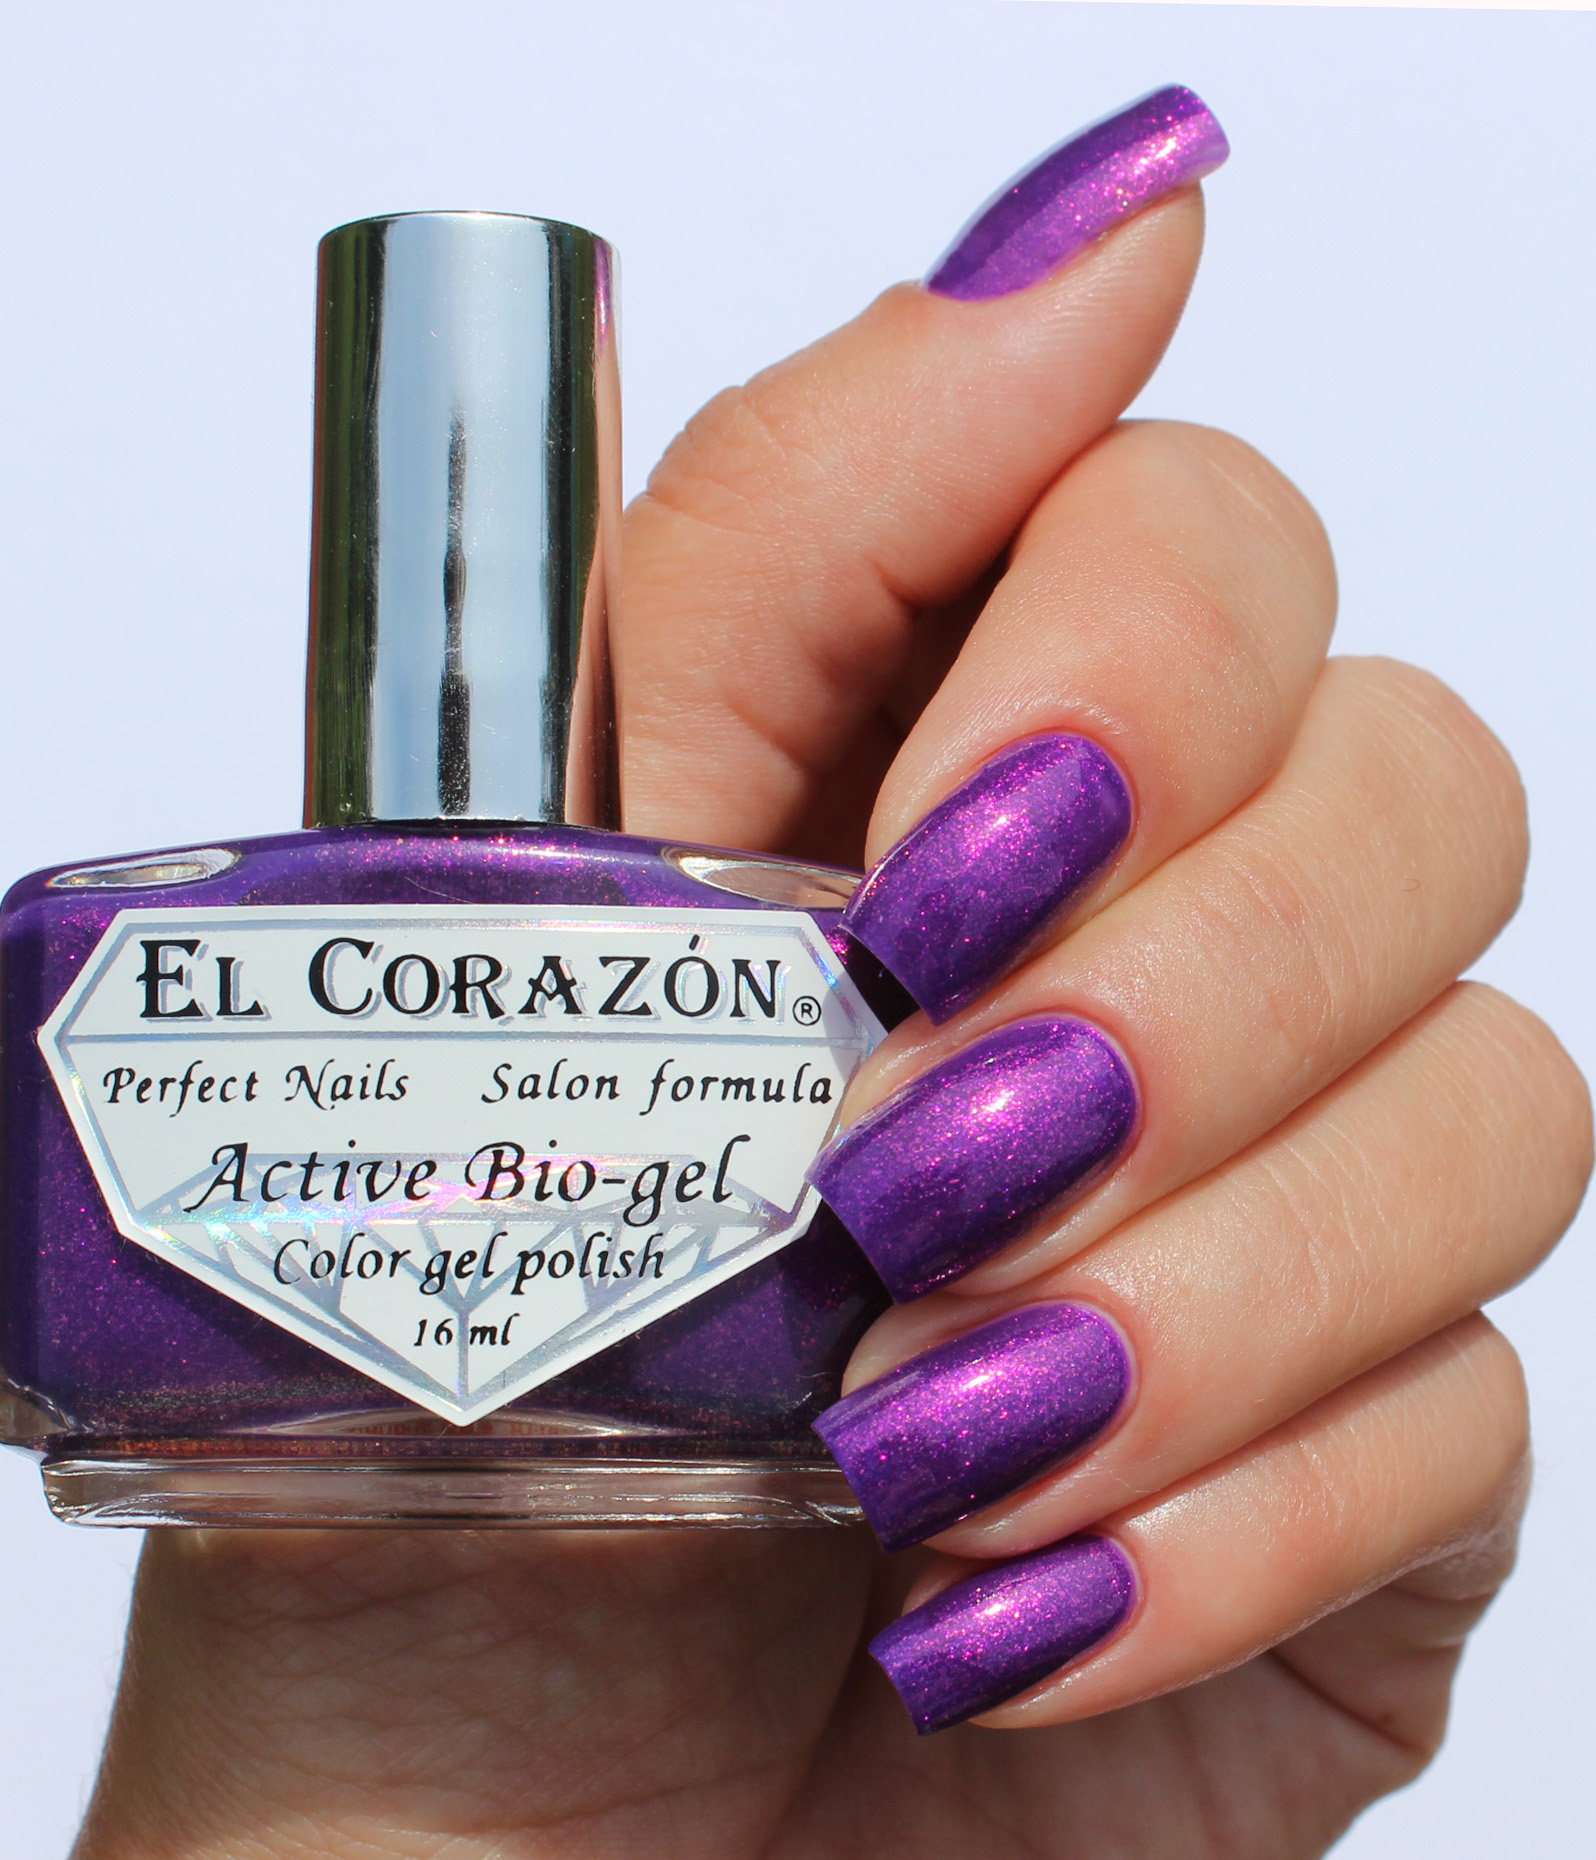 El Corazon Active Bio-gel 423/554 Magic Attraction